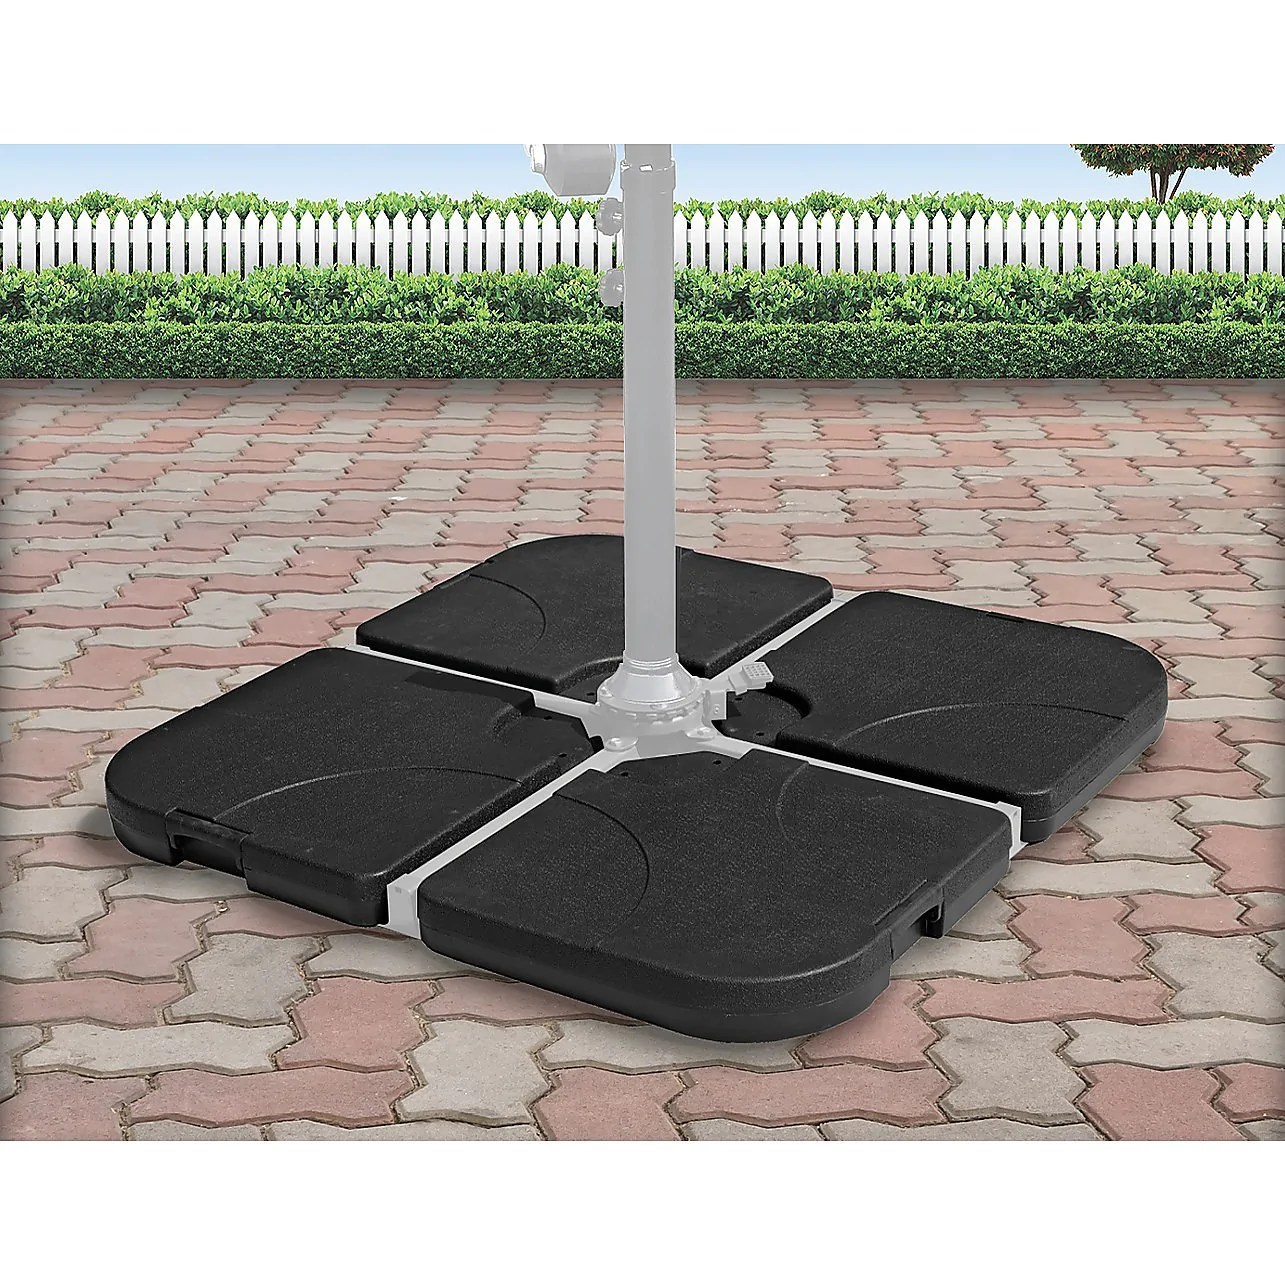 outdoor patio 4 piece cantilever offset 3m umbrella base stand weight water sand